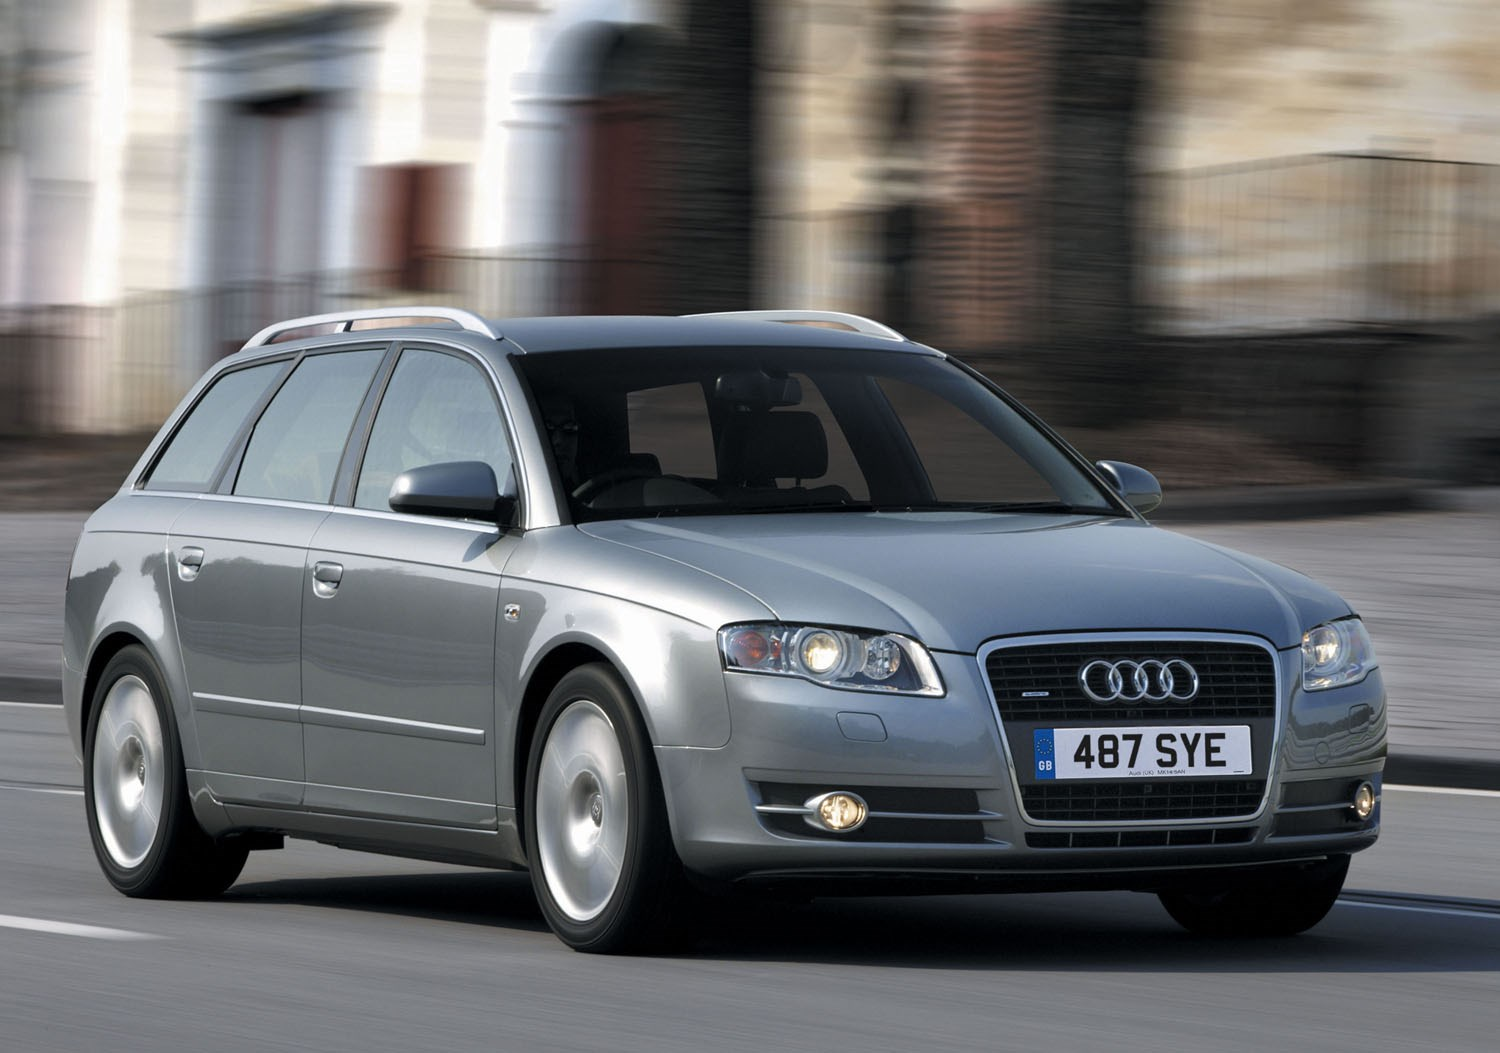 Used Audi For Sale >> Audi A4 Avant Review (2005 - 2008) | Parkers